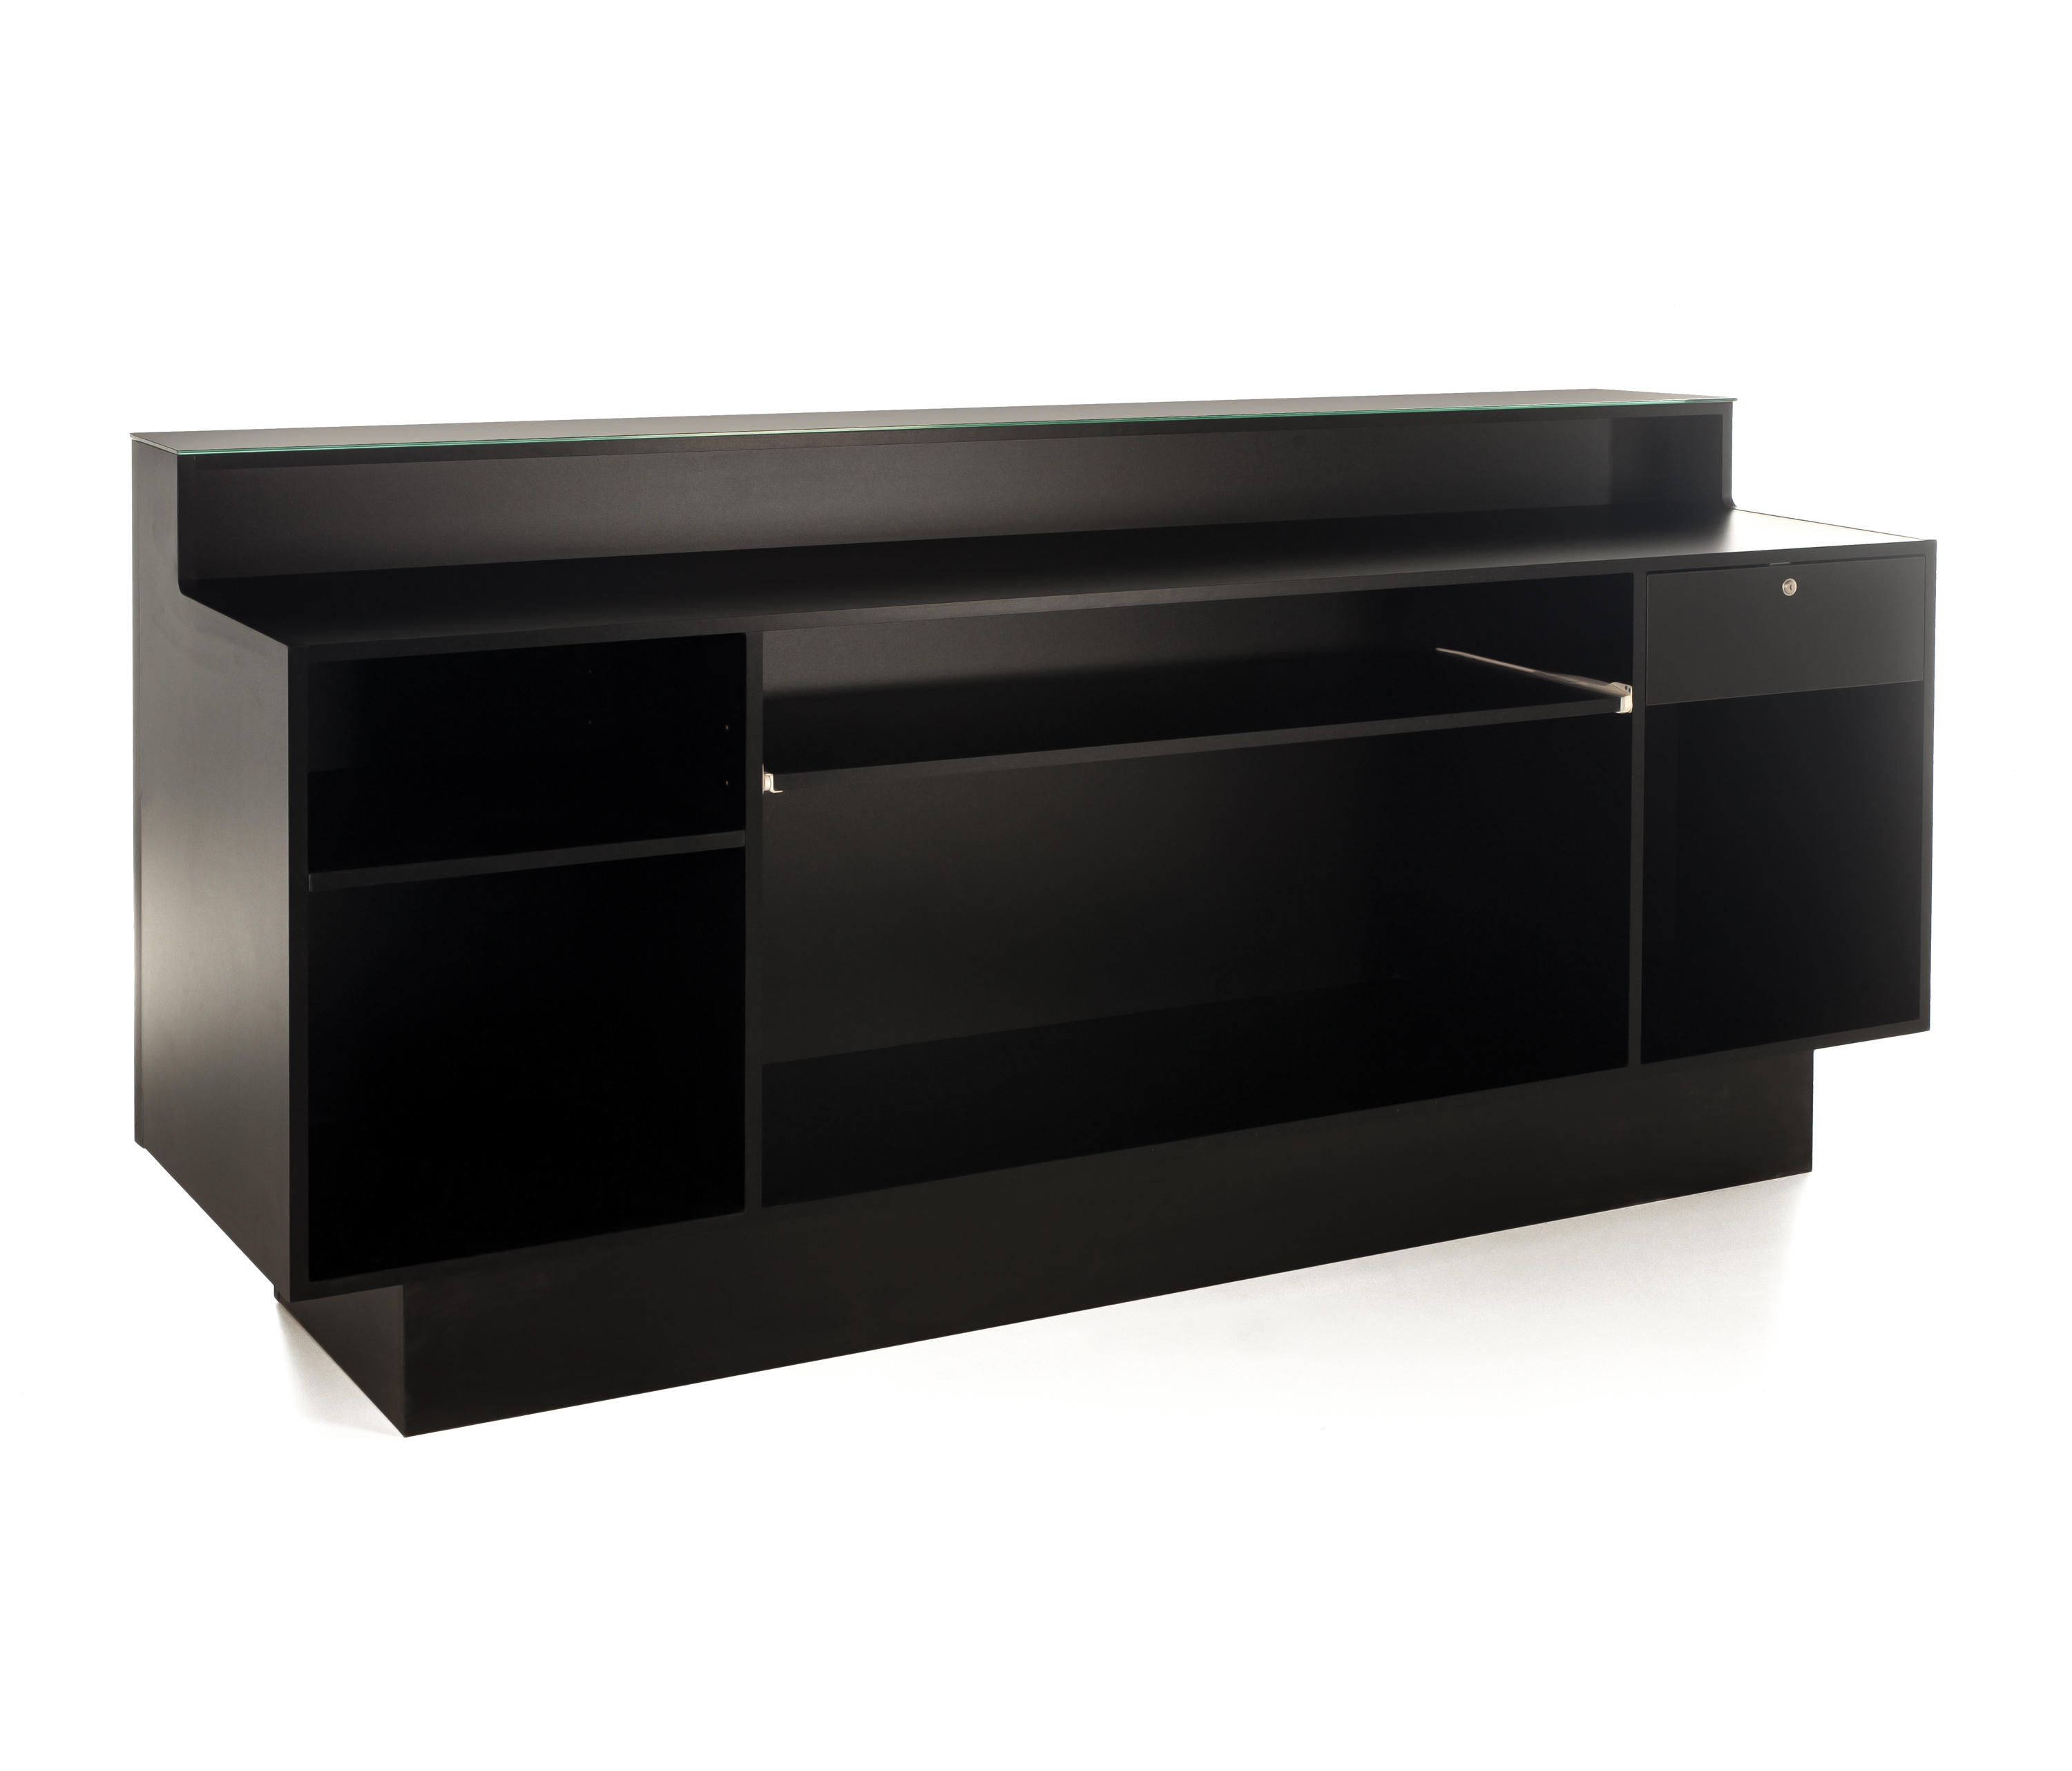 cocodesk 220 gammastore salon reception desk reception desks from gamma bross architonic. Black Bedroom Furniture Sets. Home Design Ideas